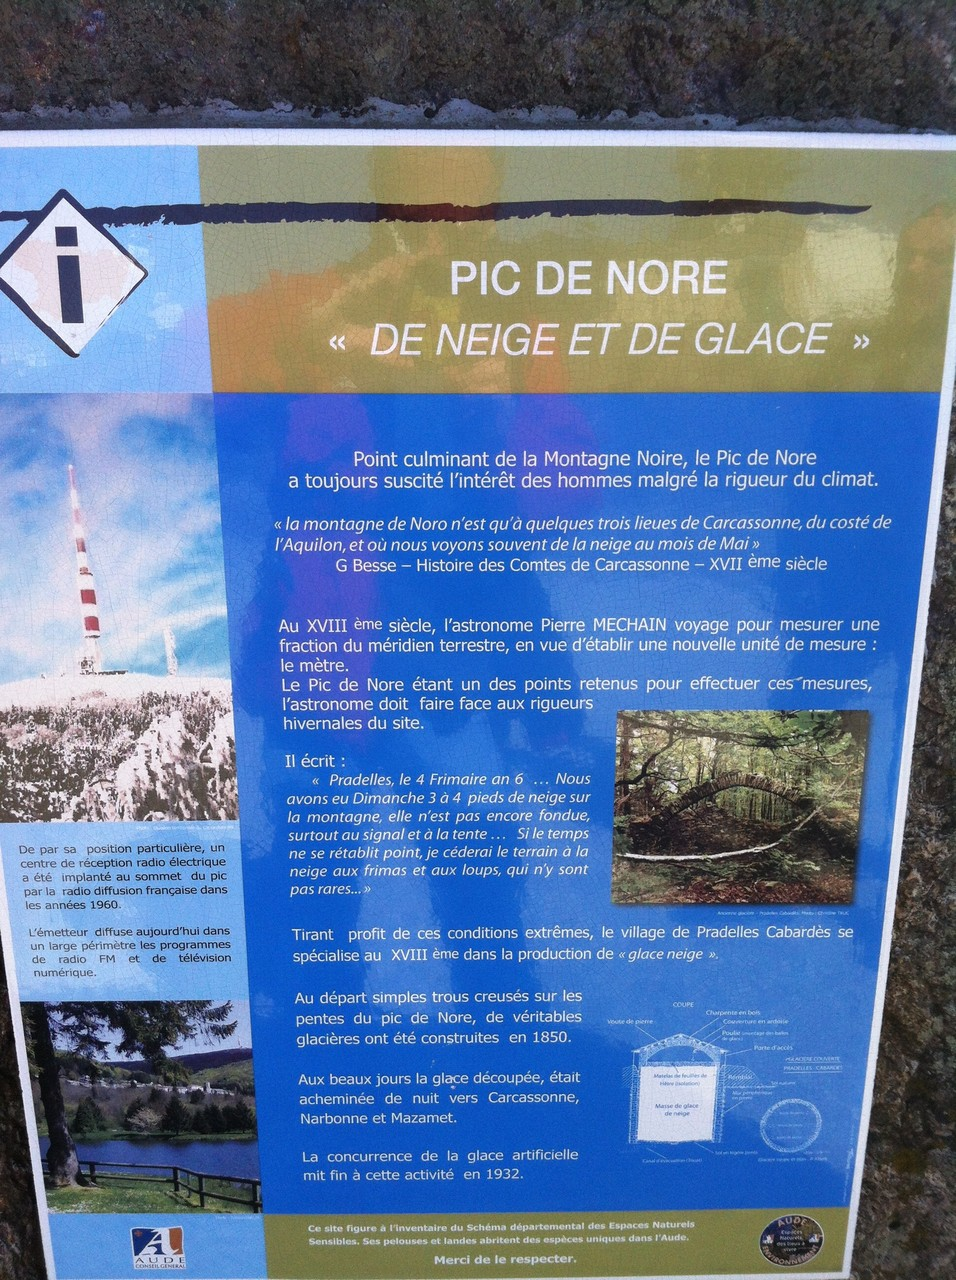 Point culminant de la montagne Noire